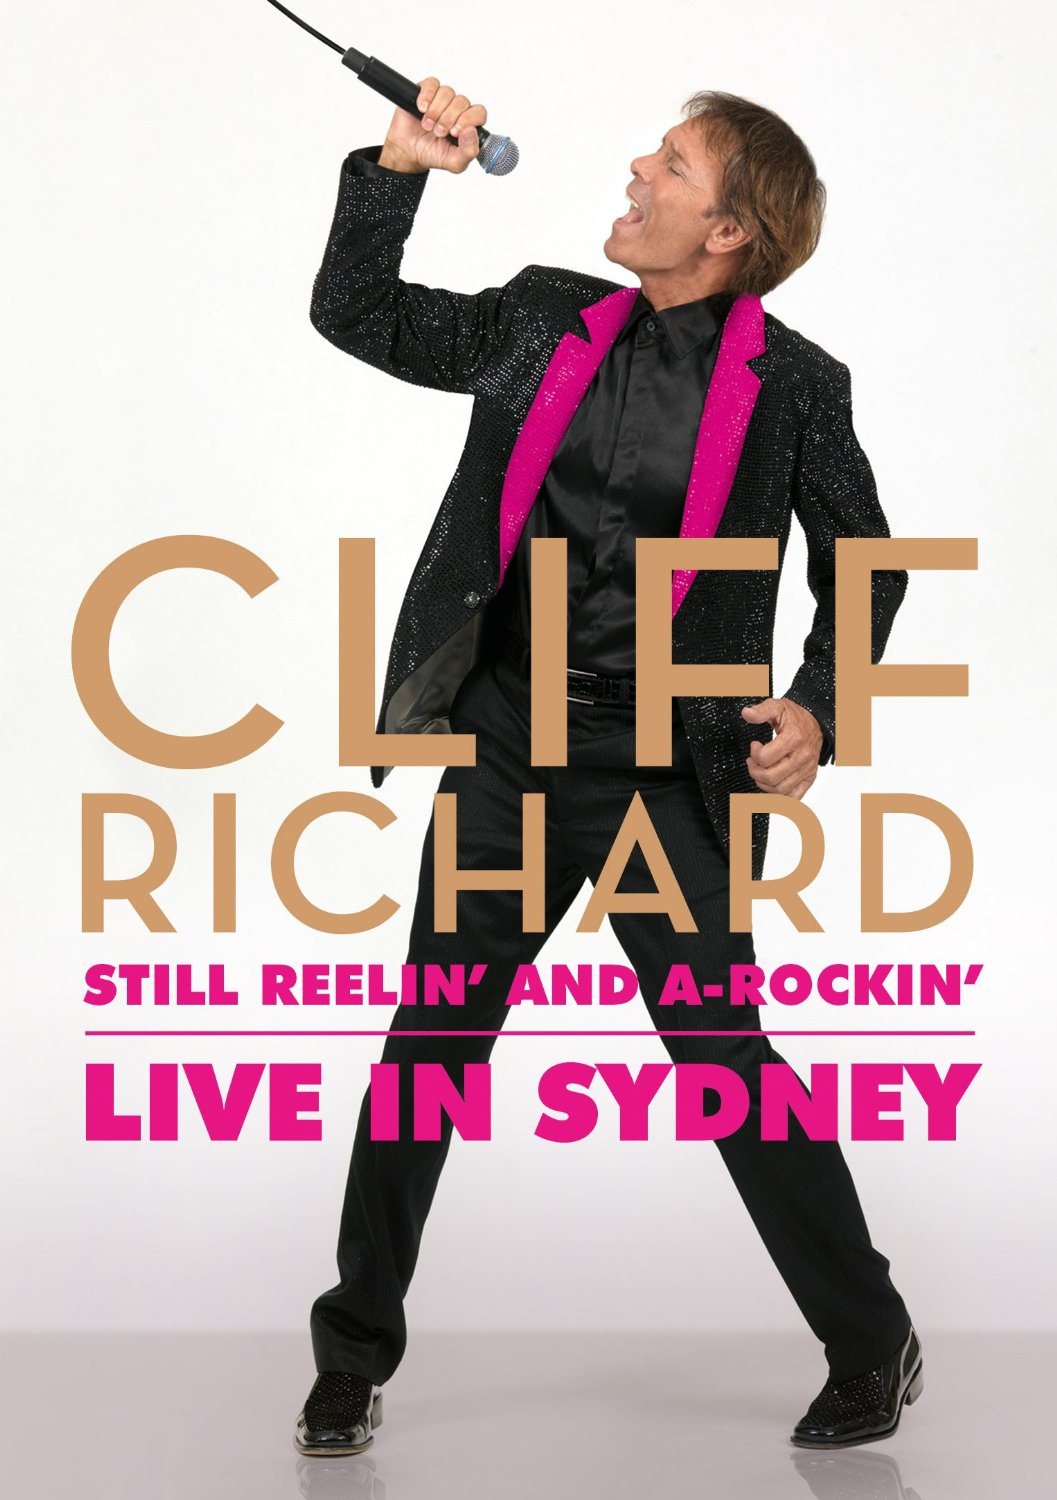 DVD & Blu-ray of rare Cliff's February 11, 2013 concert in Sydney, Australia